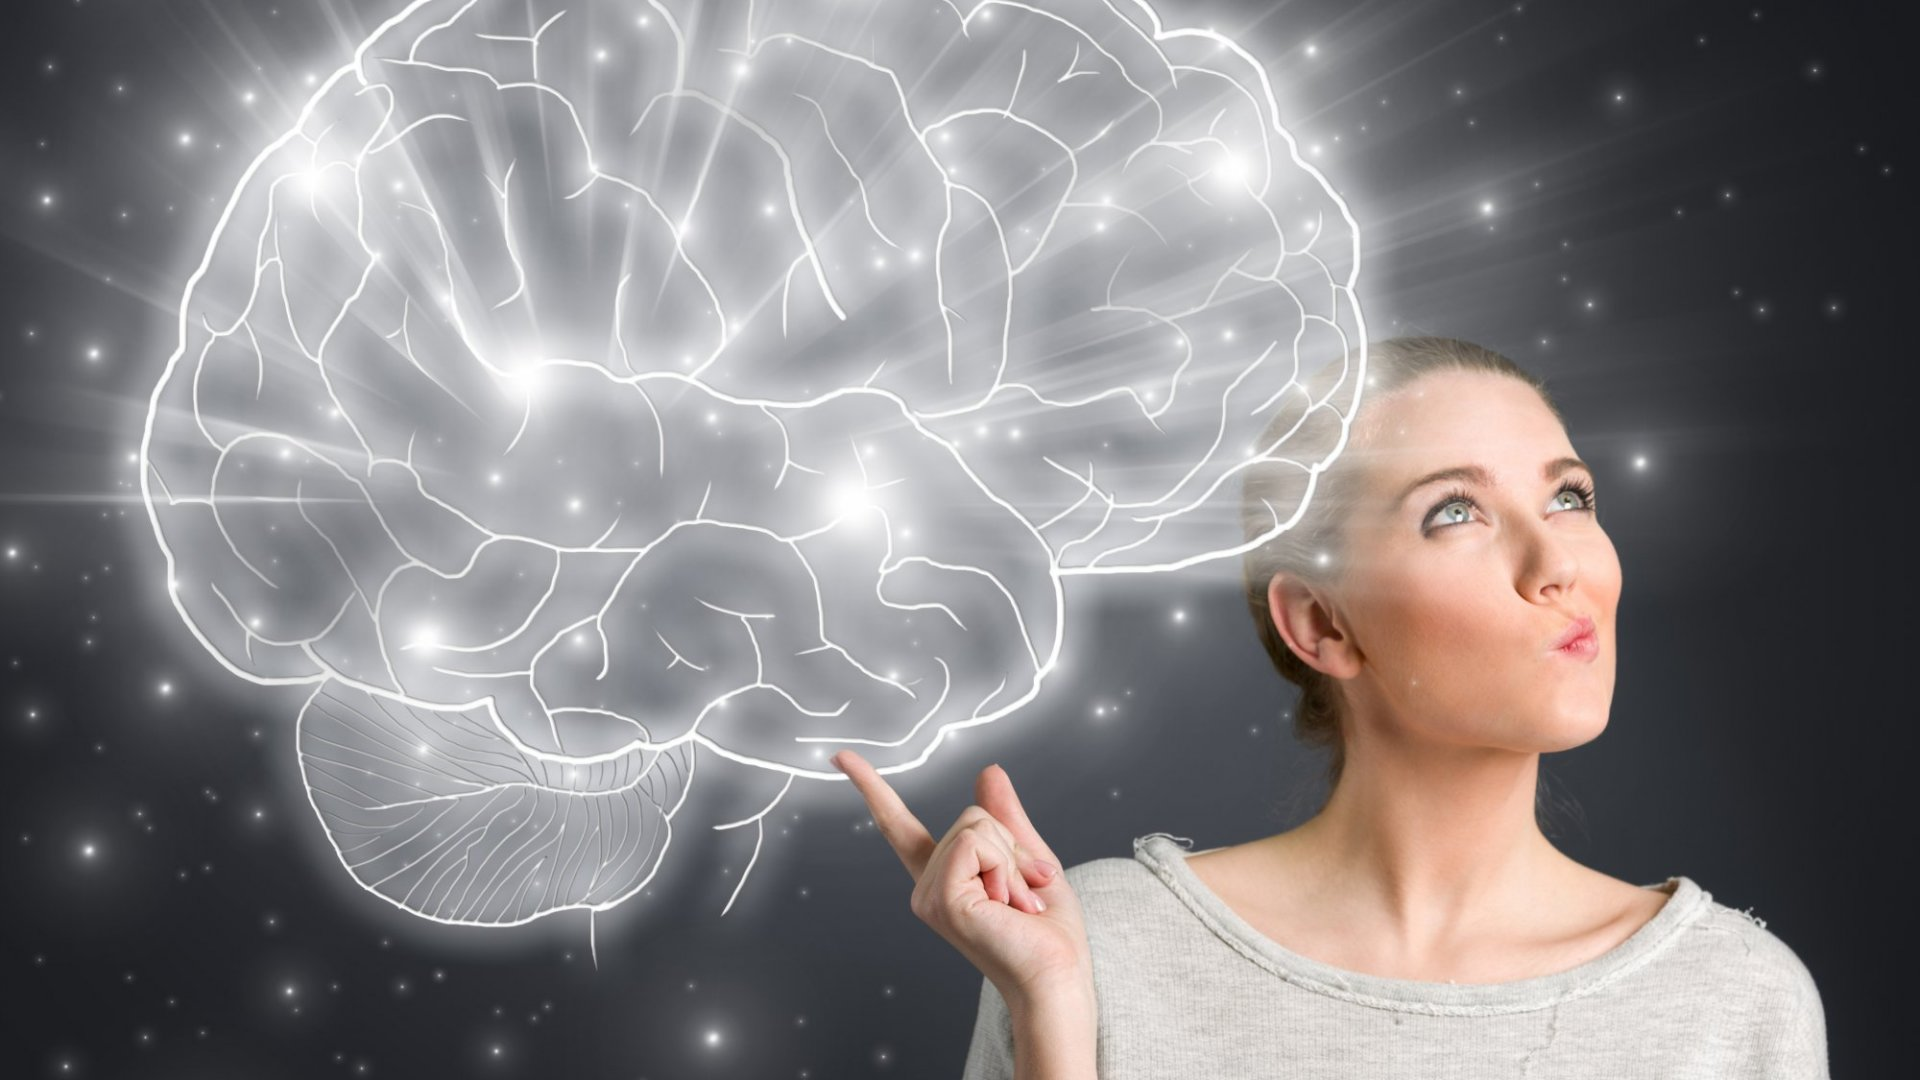 You'll Be Surprised These 18 'Facts' About the Brain and Learning are Actually Myths